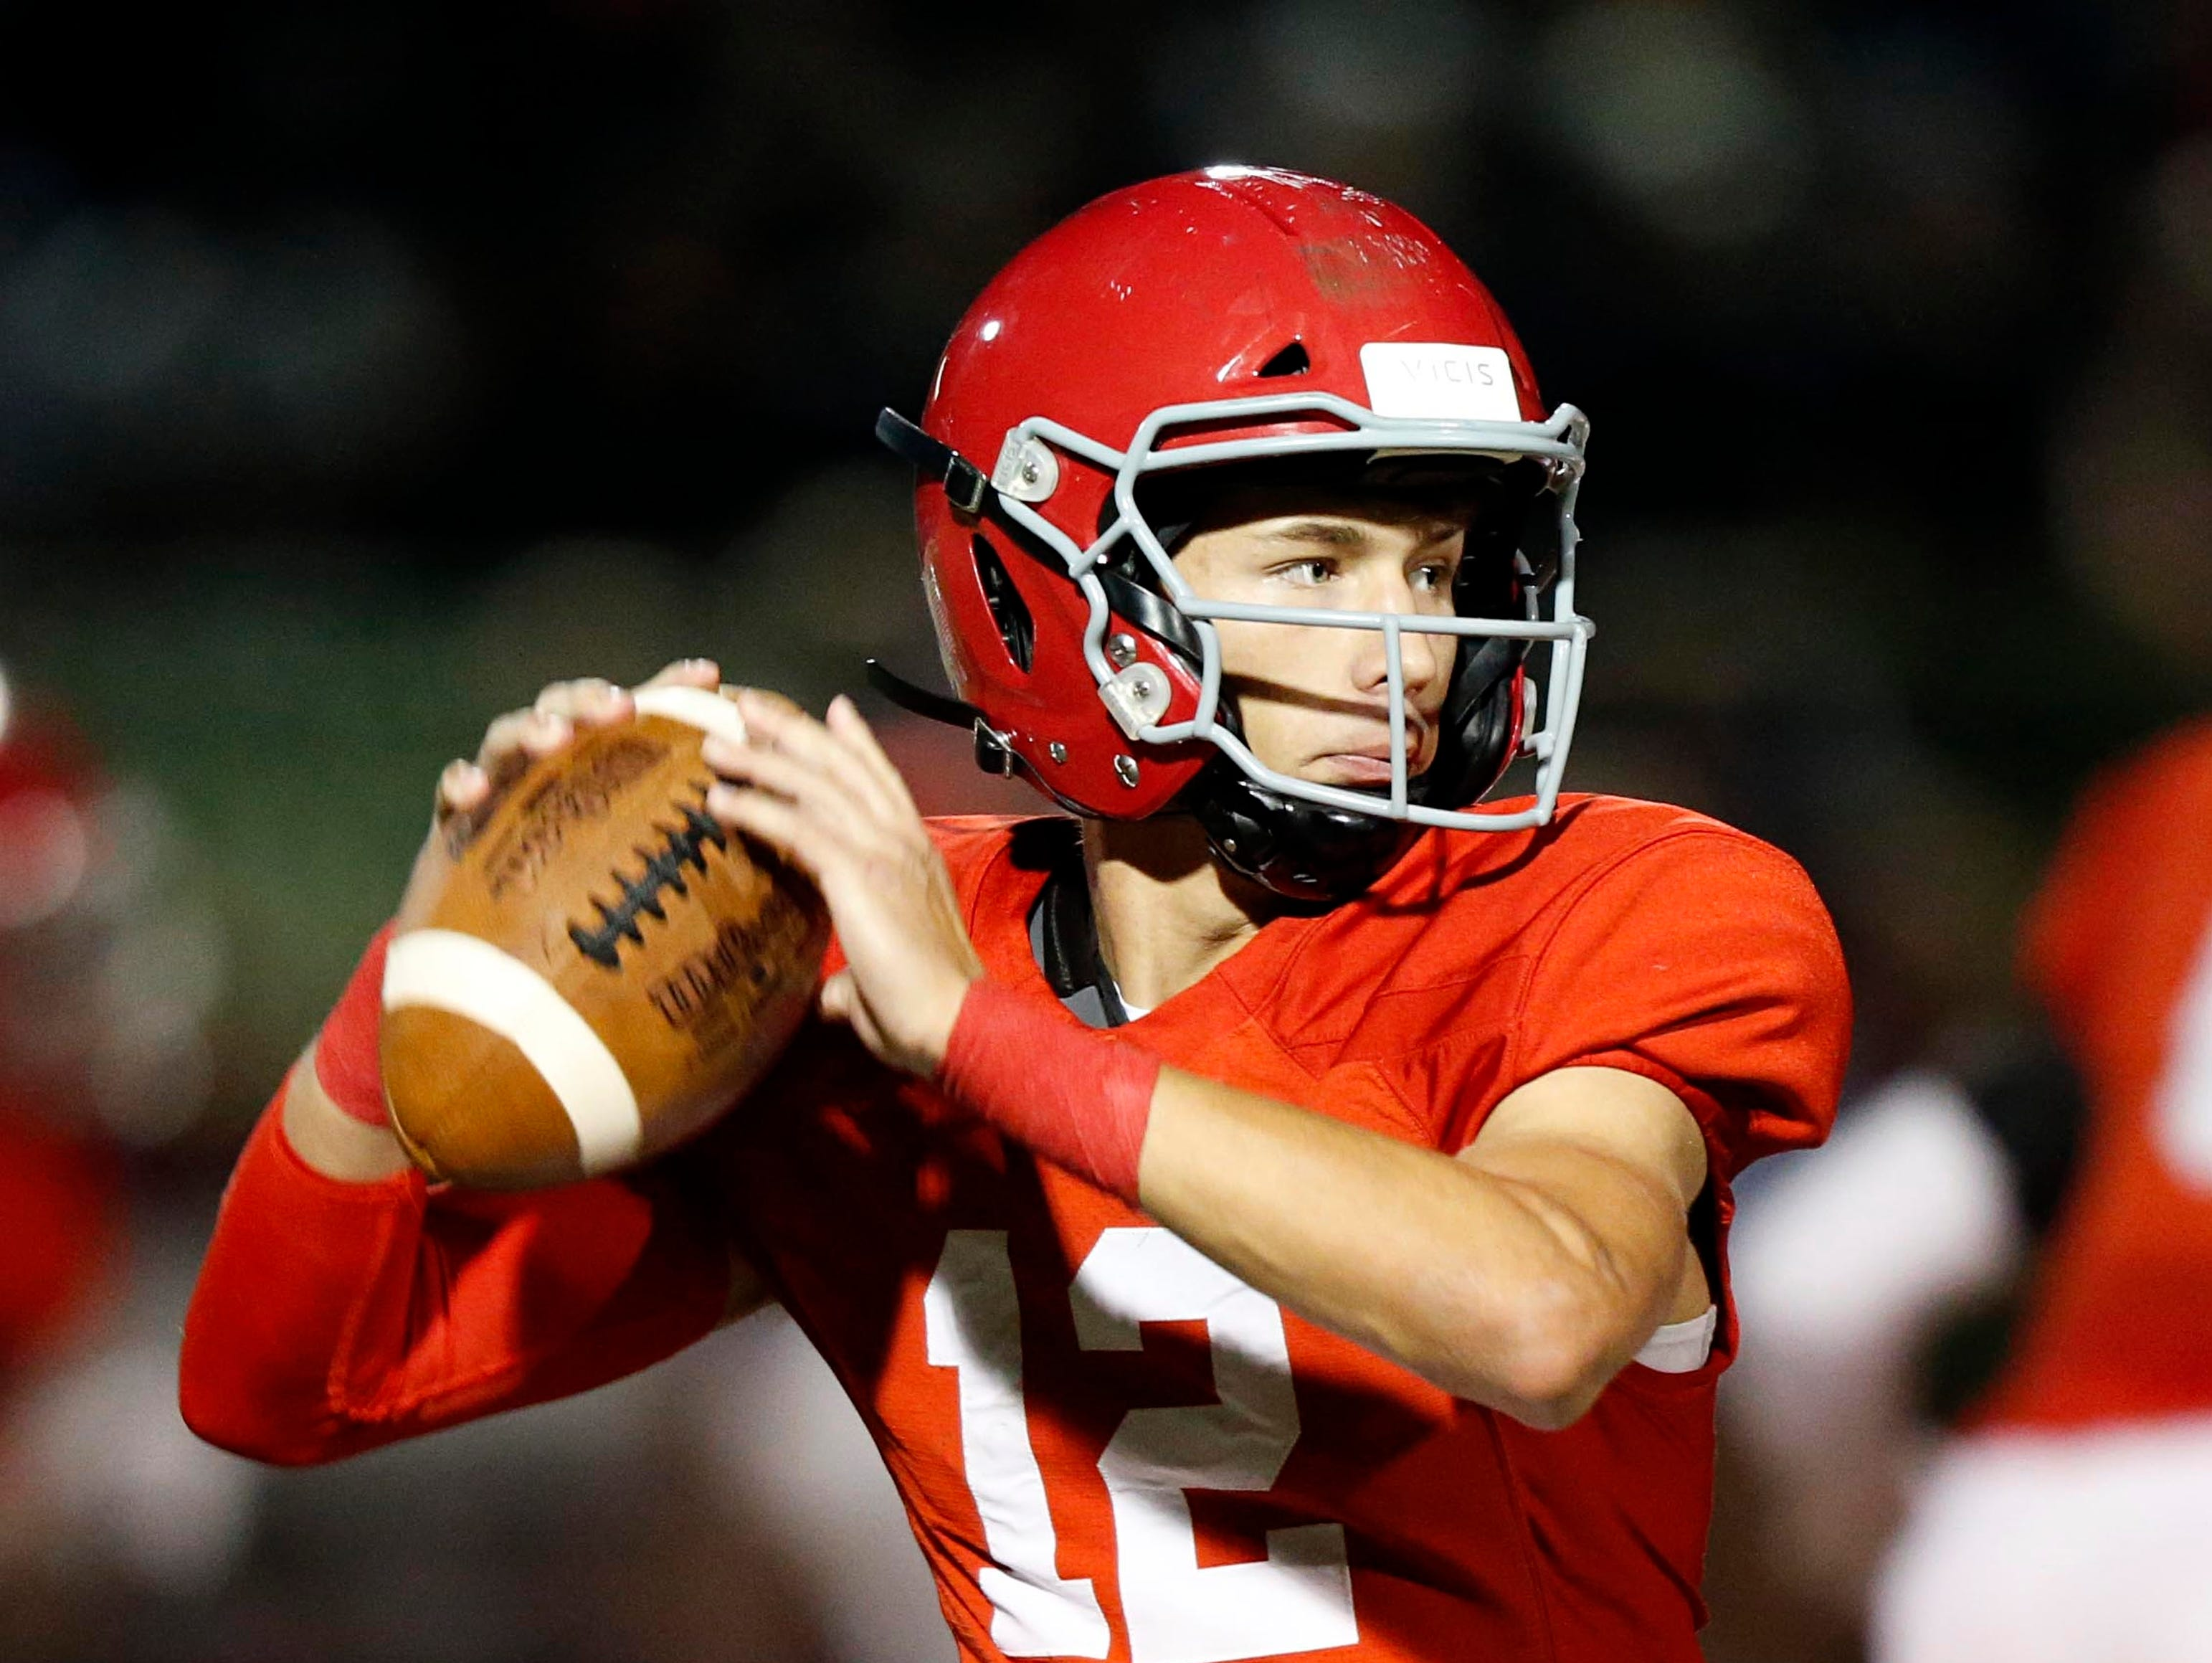 12.Brentwood Academy(9-2) beat Christian Brothers, 21-14.